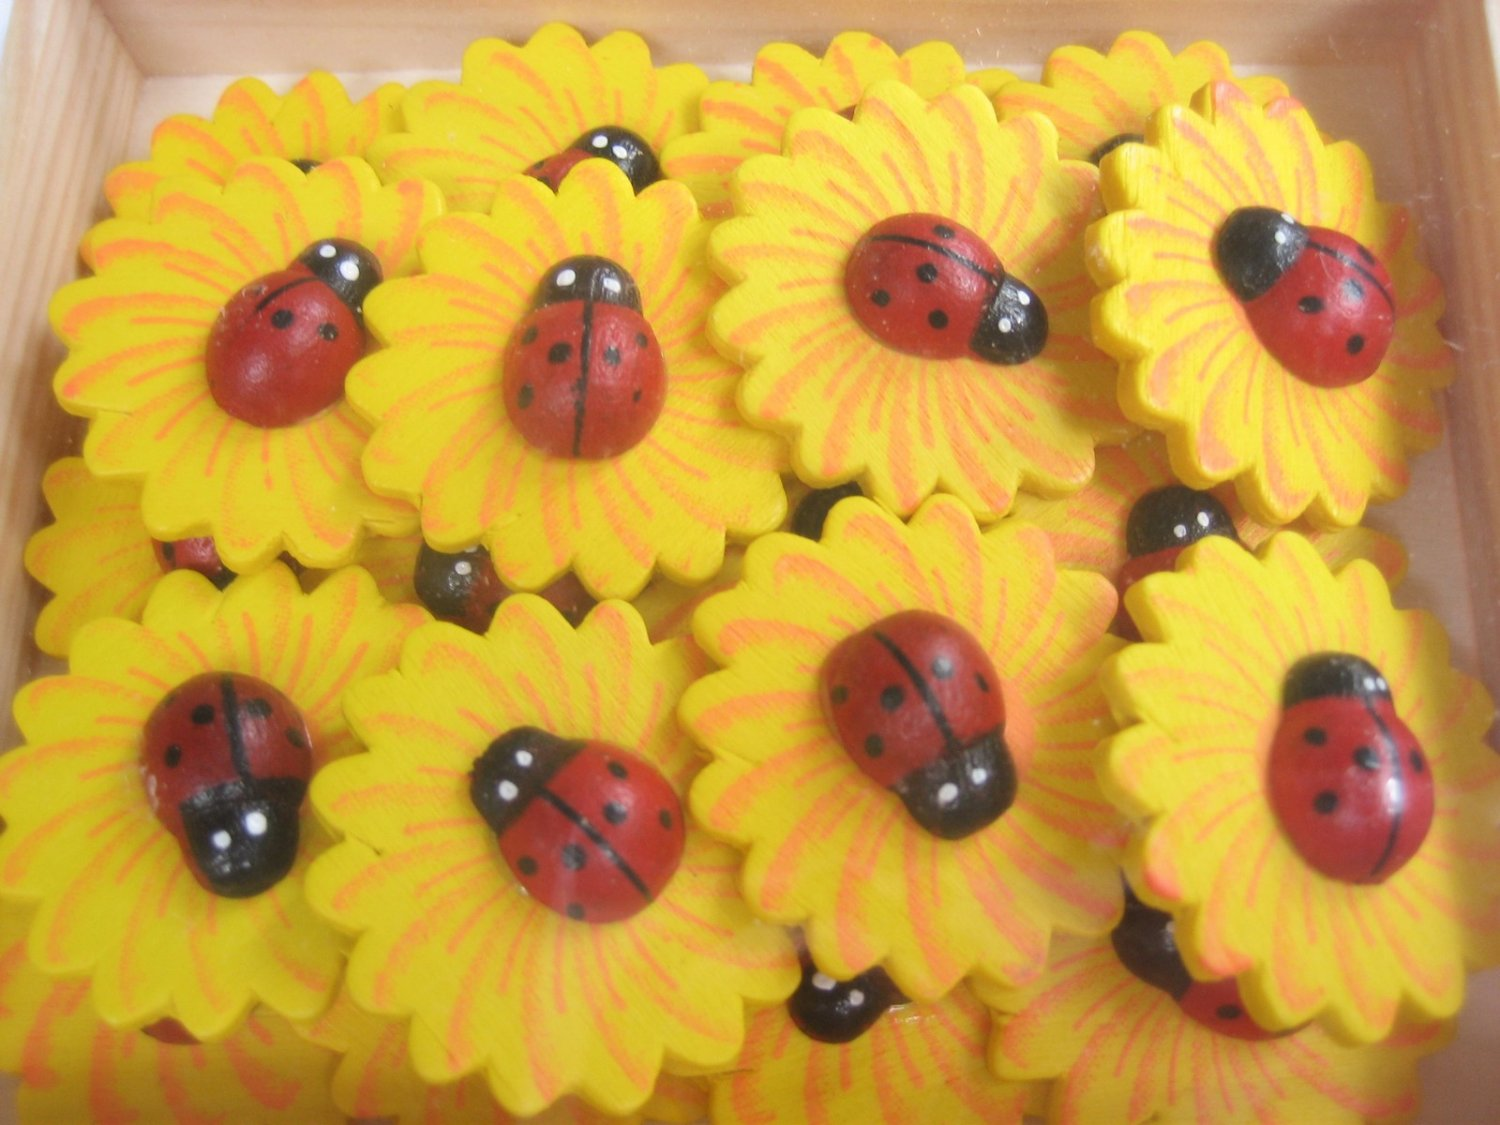 40pcs Ladybug on Sunflower Wooden Sticker for Cardmaking, Scrapbooking, Craft etc.